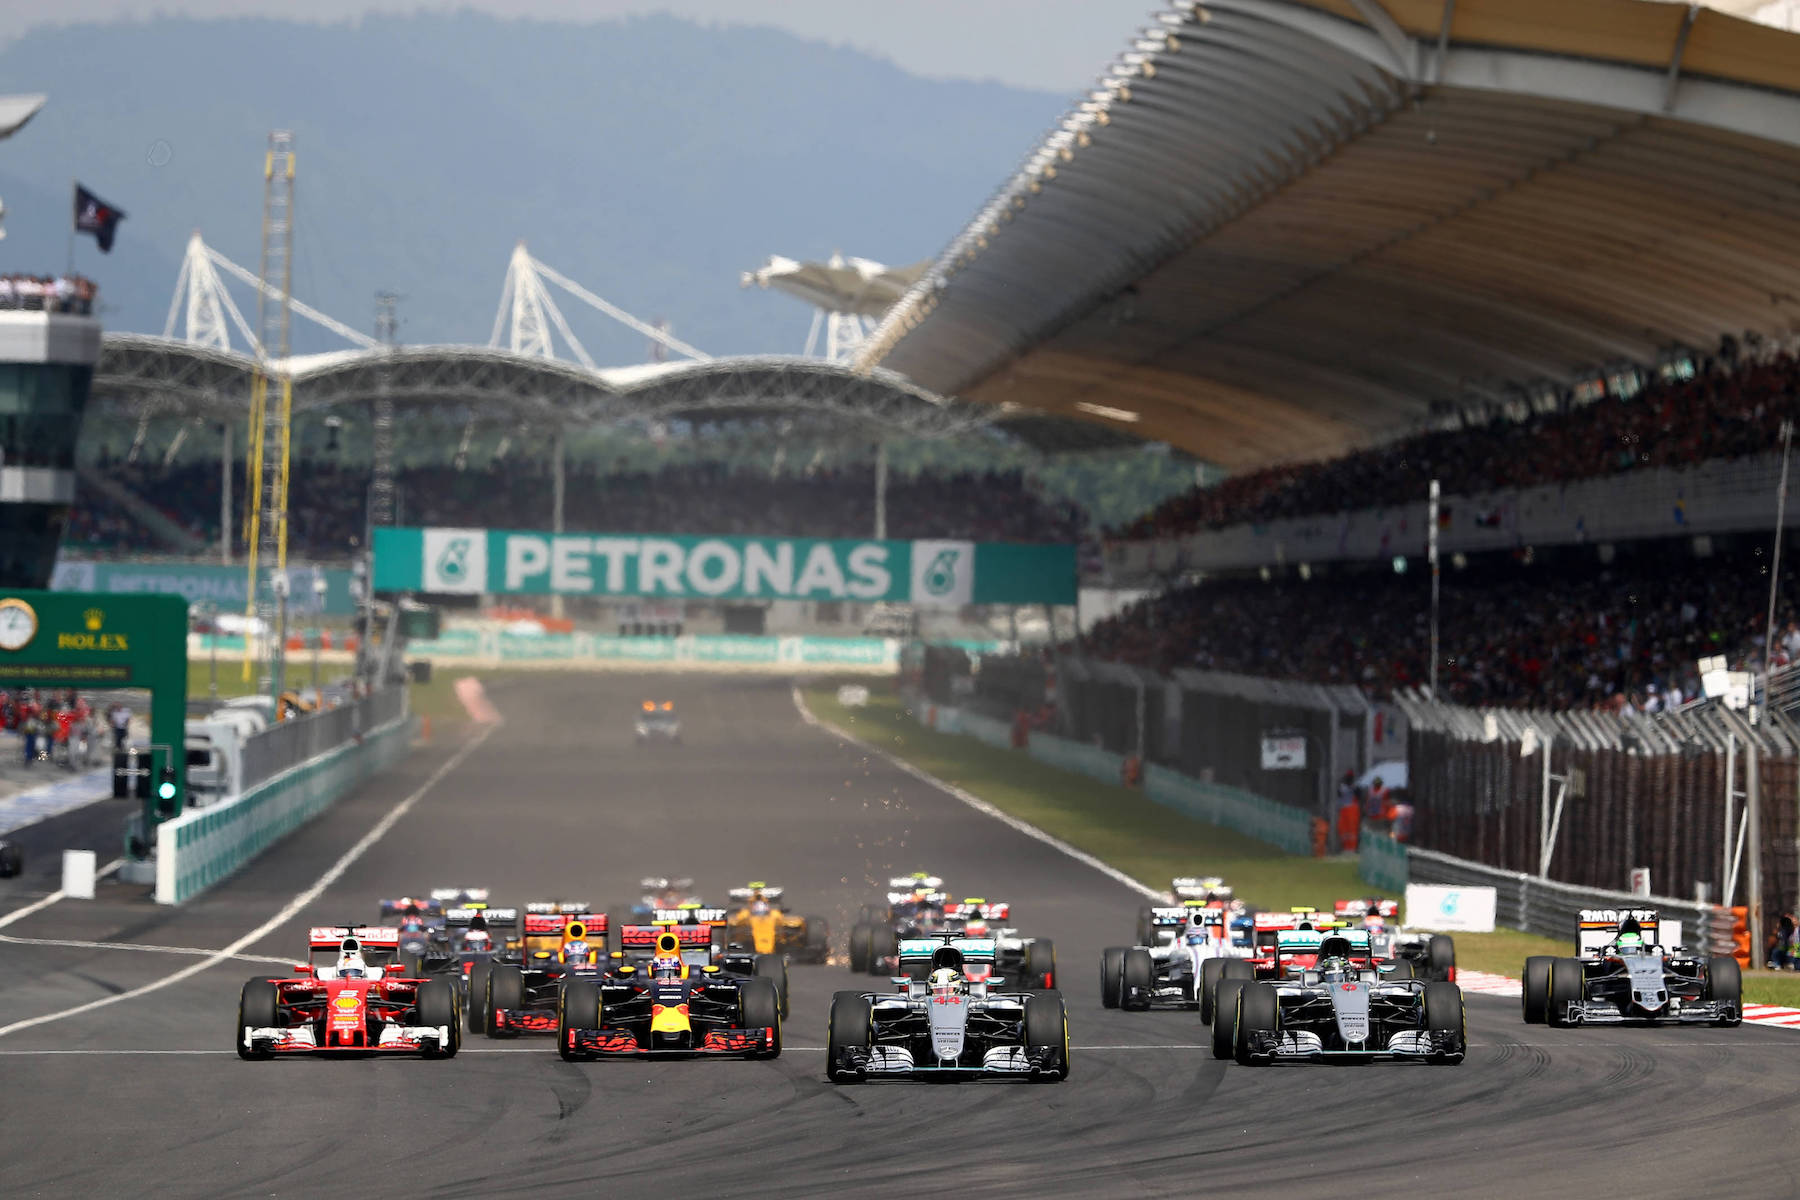 Salracing - Malaysia Grand Prix start